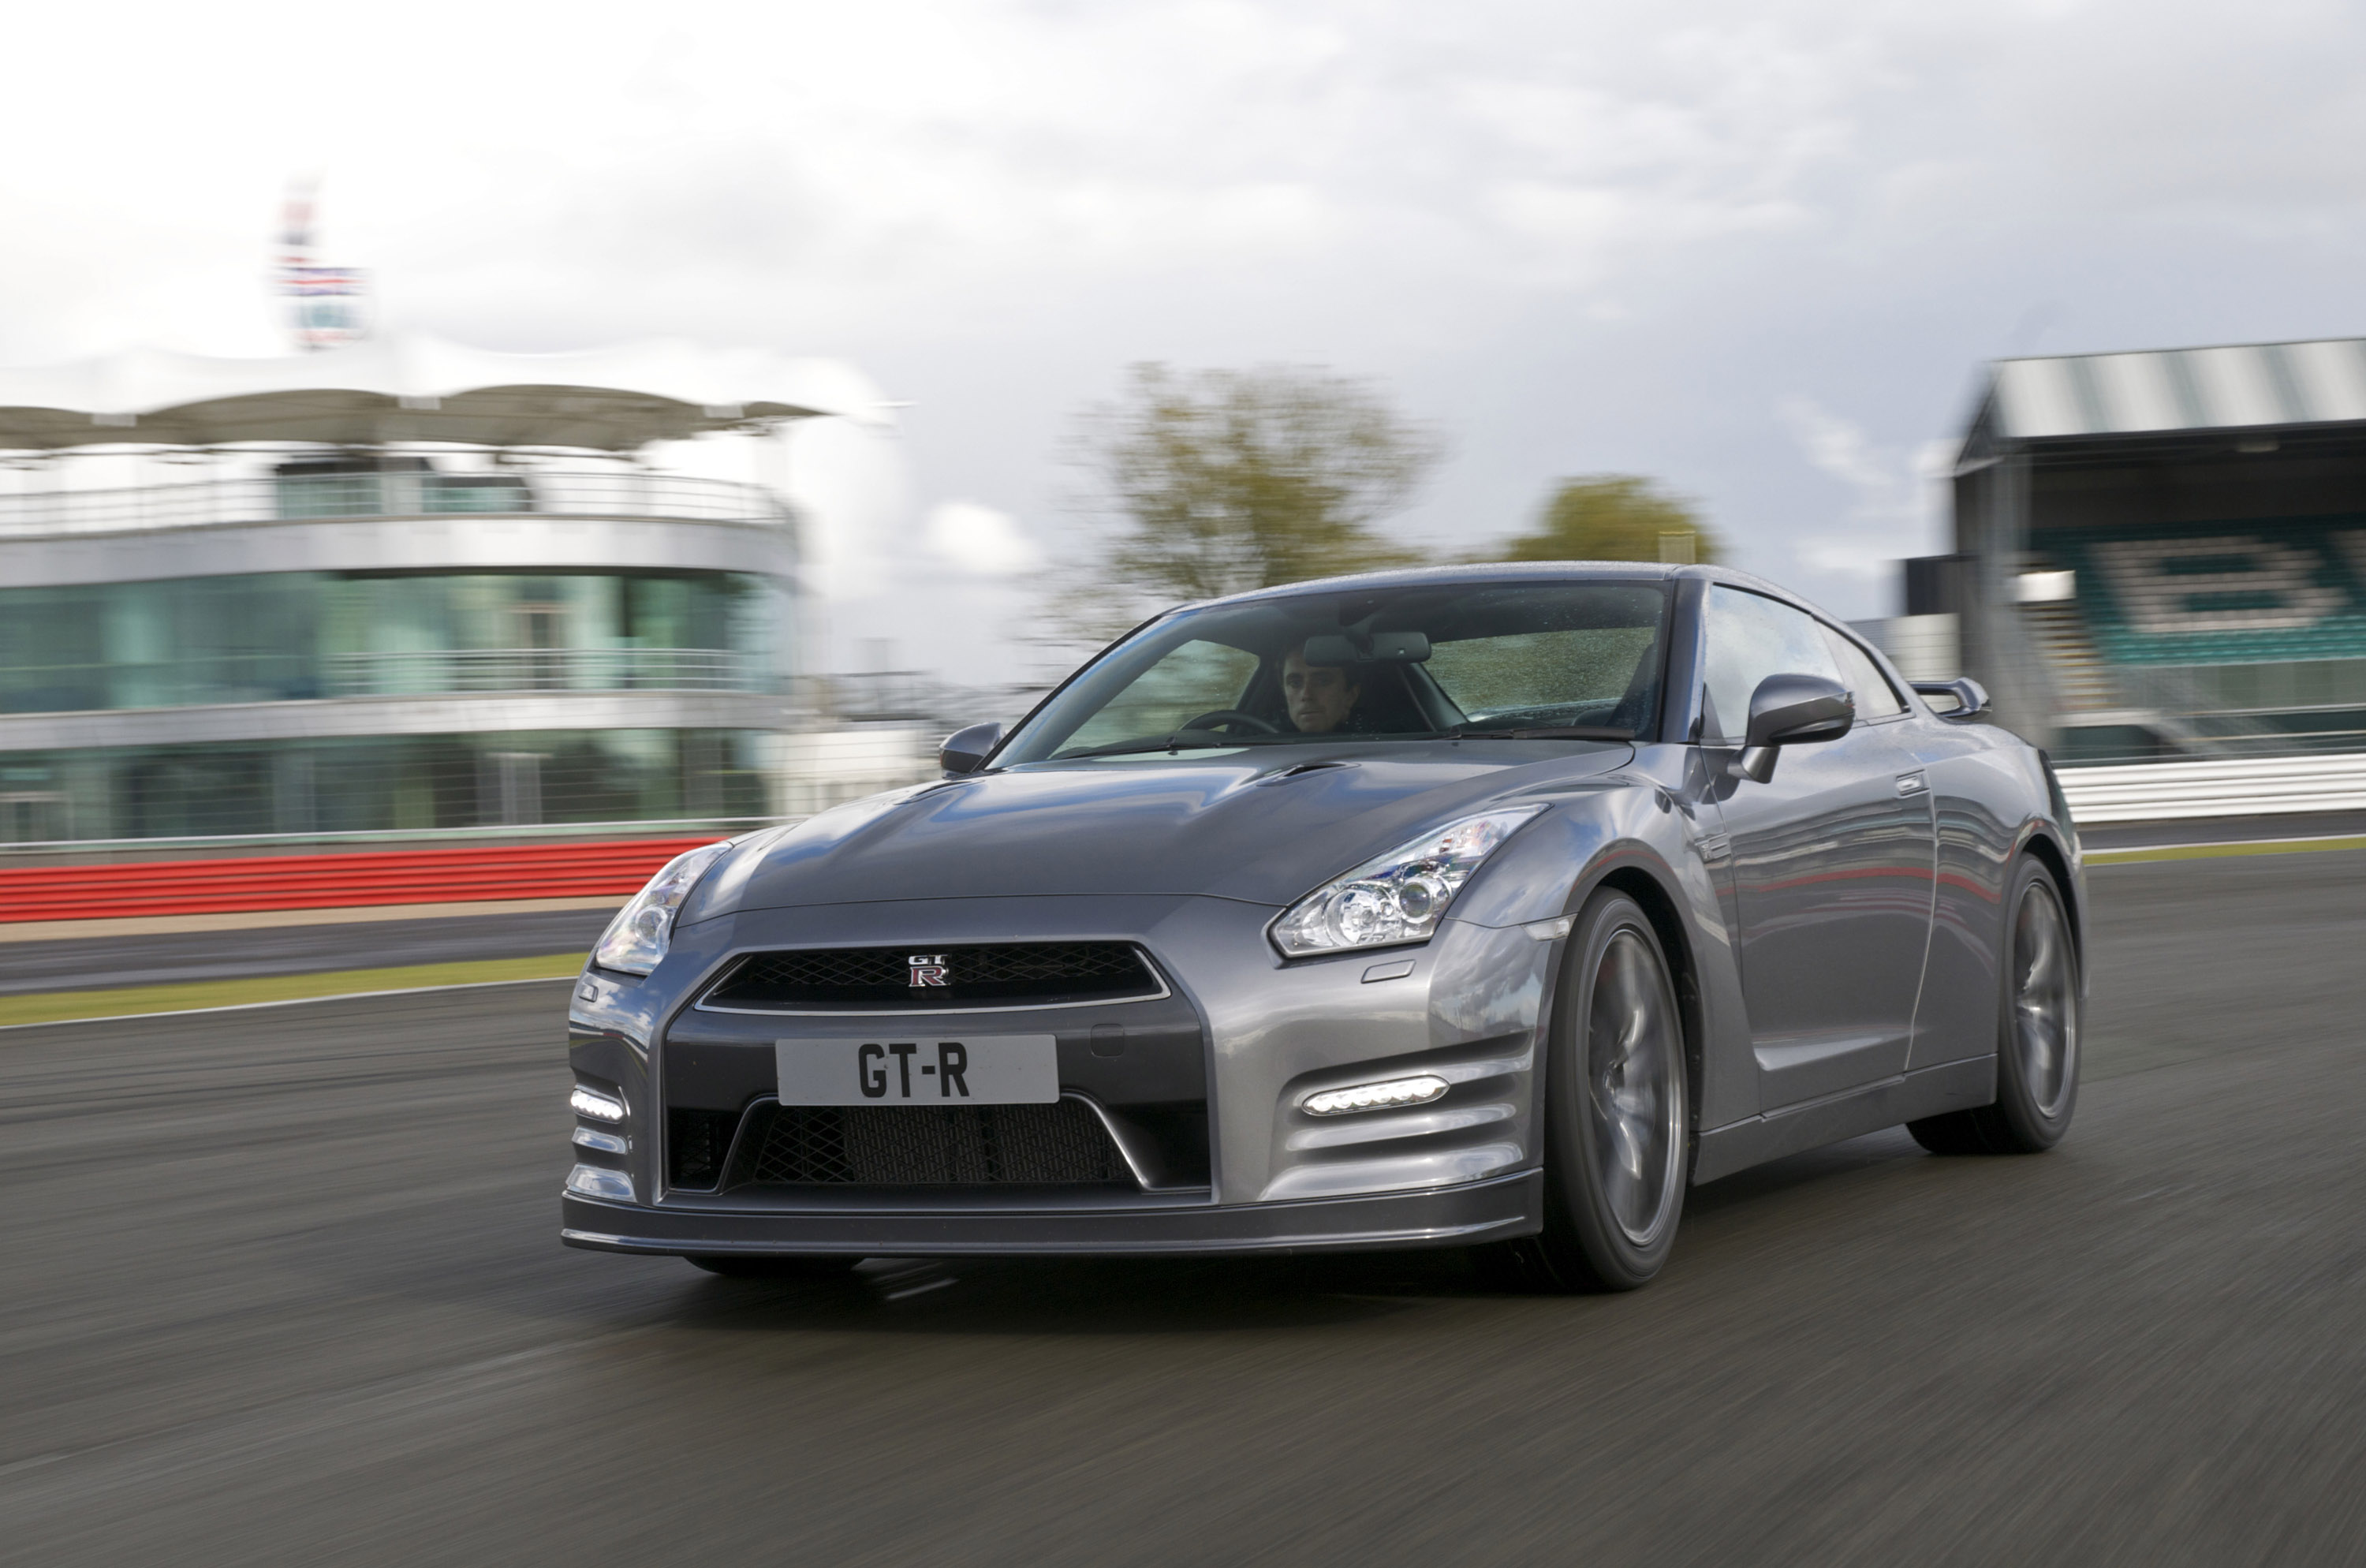 2013 nissan gt r r35 seconds at 1 4 mile with 201 km h. Black Bedroom Furniture Sets. Home Design Ideas